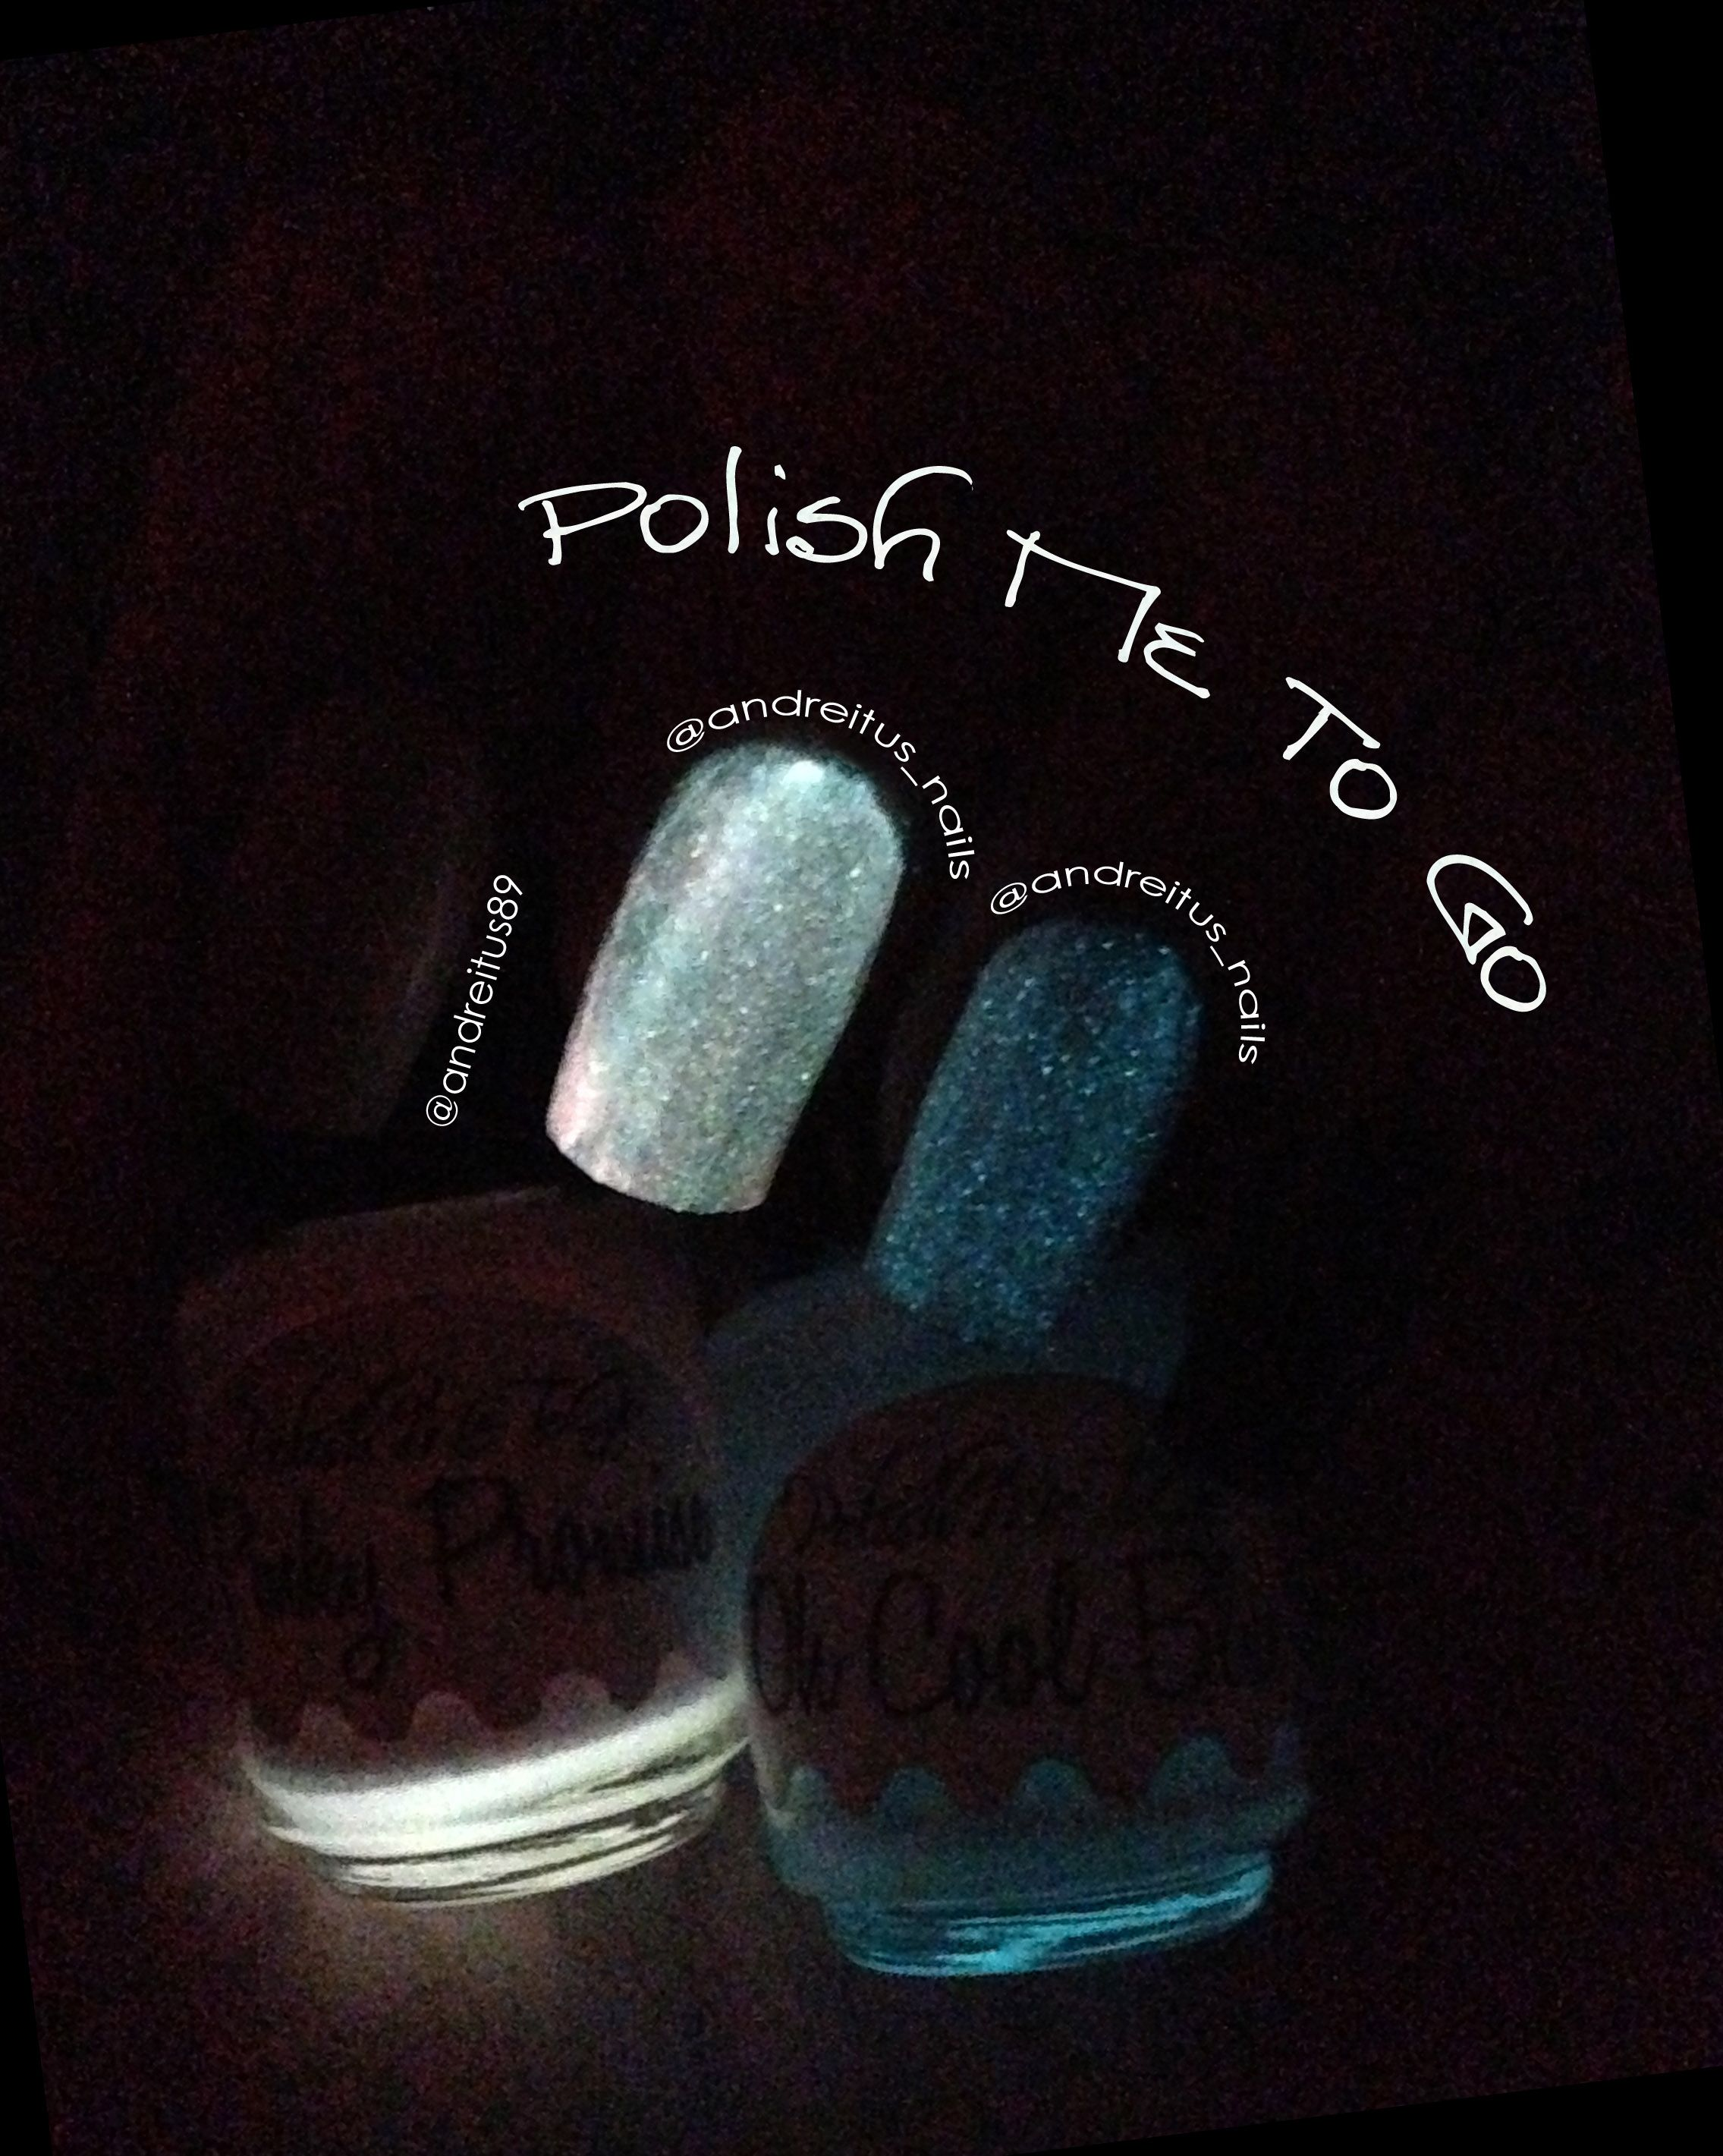 Glow in the dark nails. Glowing polish. Polish me to go. Notd